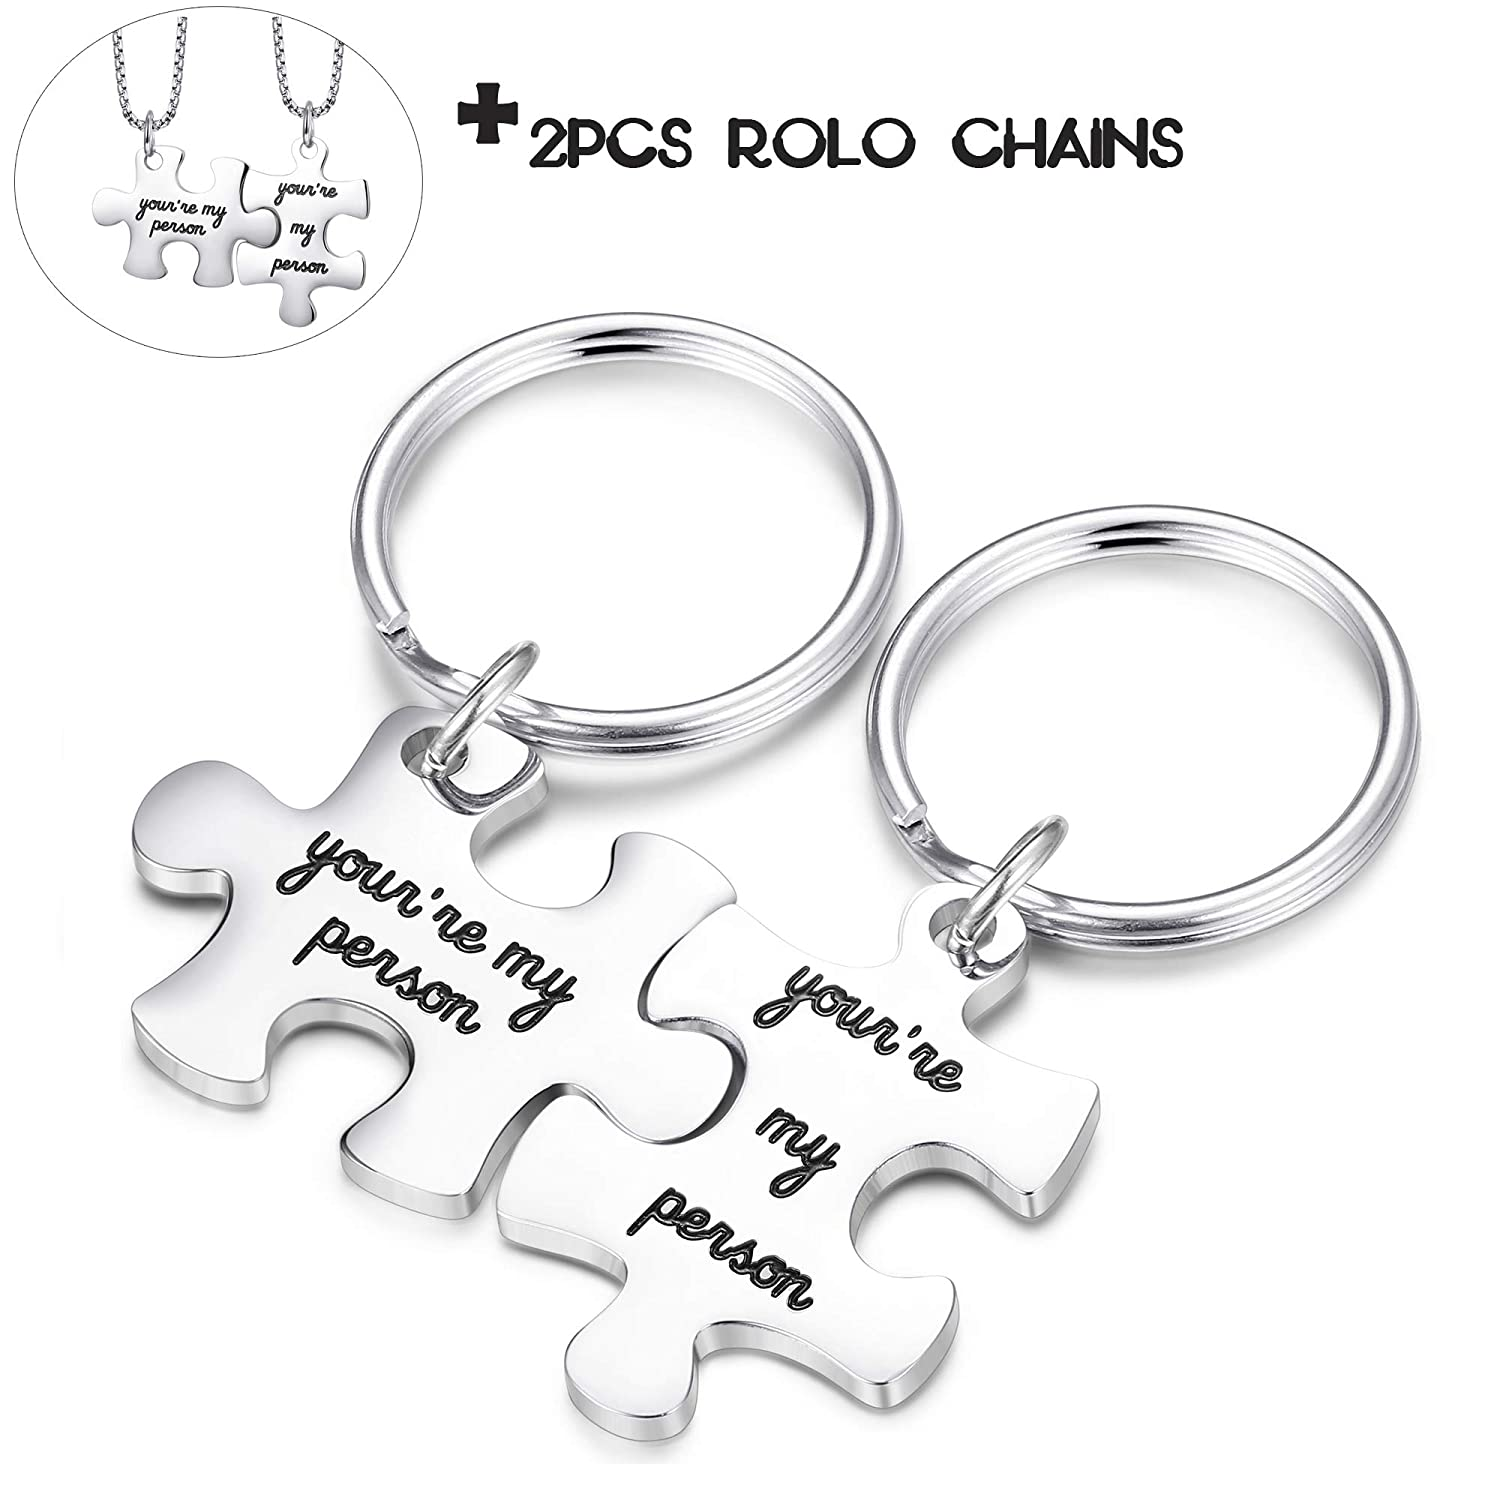 Jstyle 2Pcs Womens Mens Couples Keychains Set Stainless Steel Puzzle Pendant Love Matching Necklace Couple Jewelry Gift for Girlfriend Boyfriend Wife Husband N0001-S